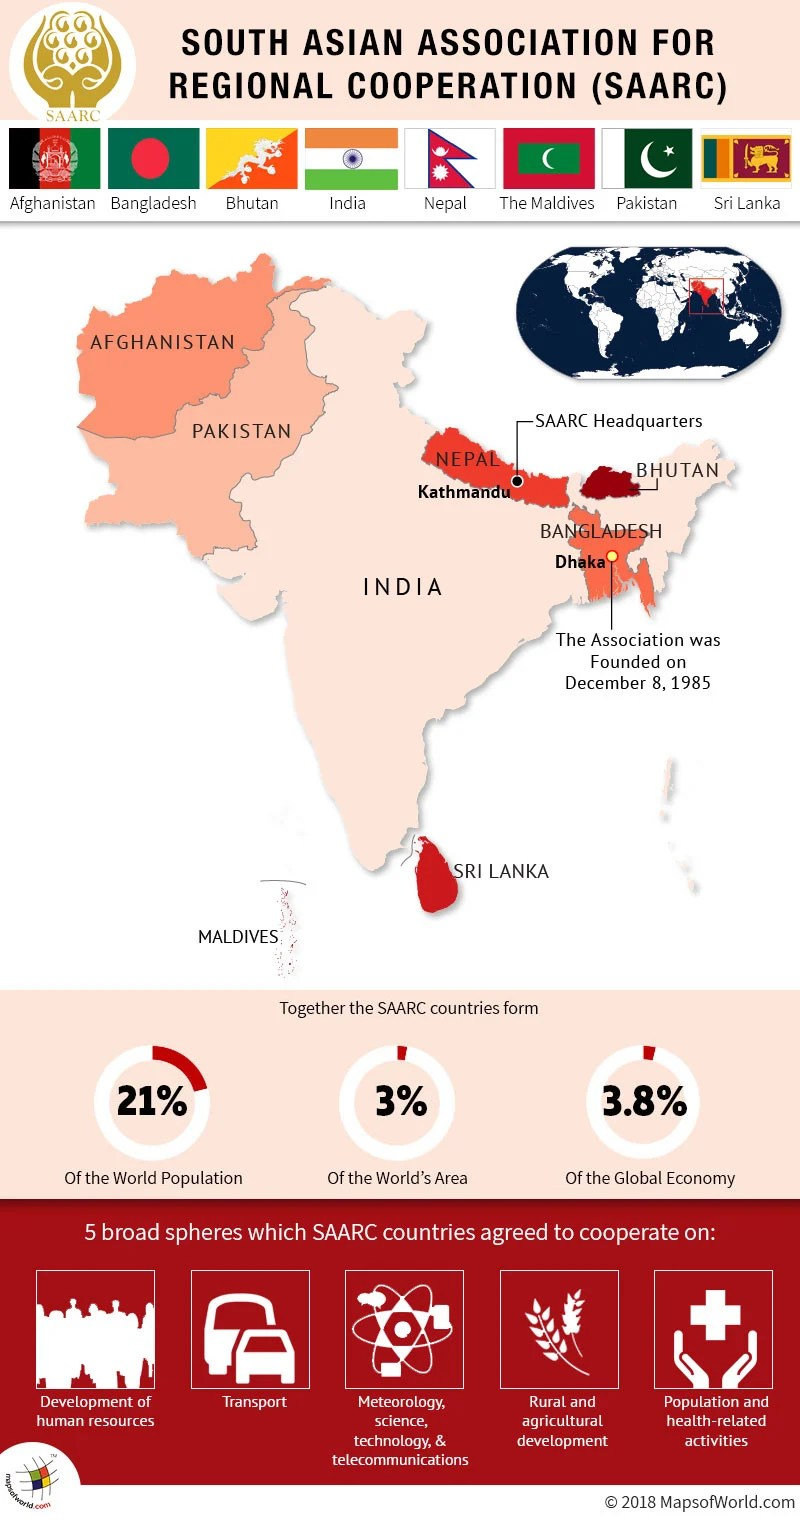 Map and Info on SAARC Member Countries